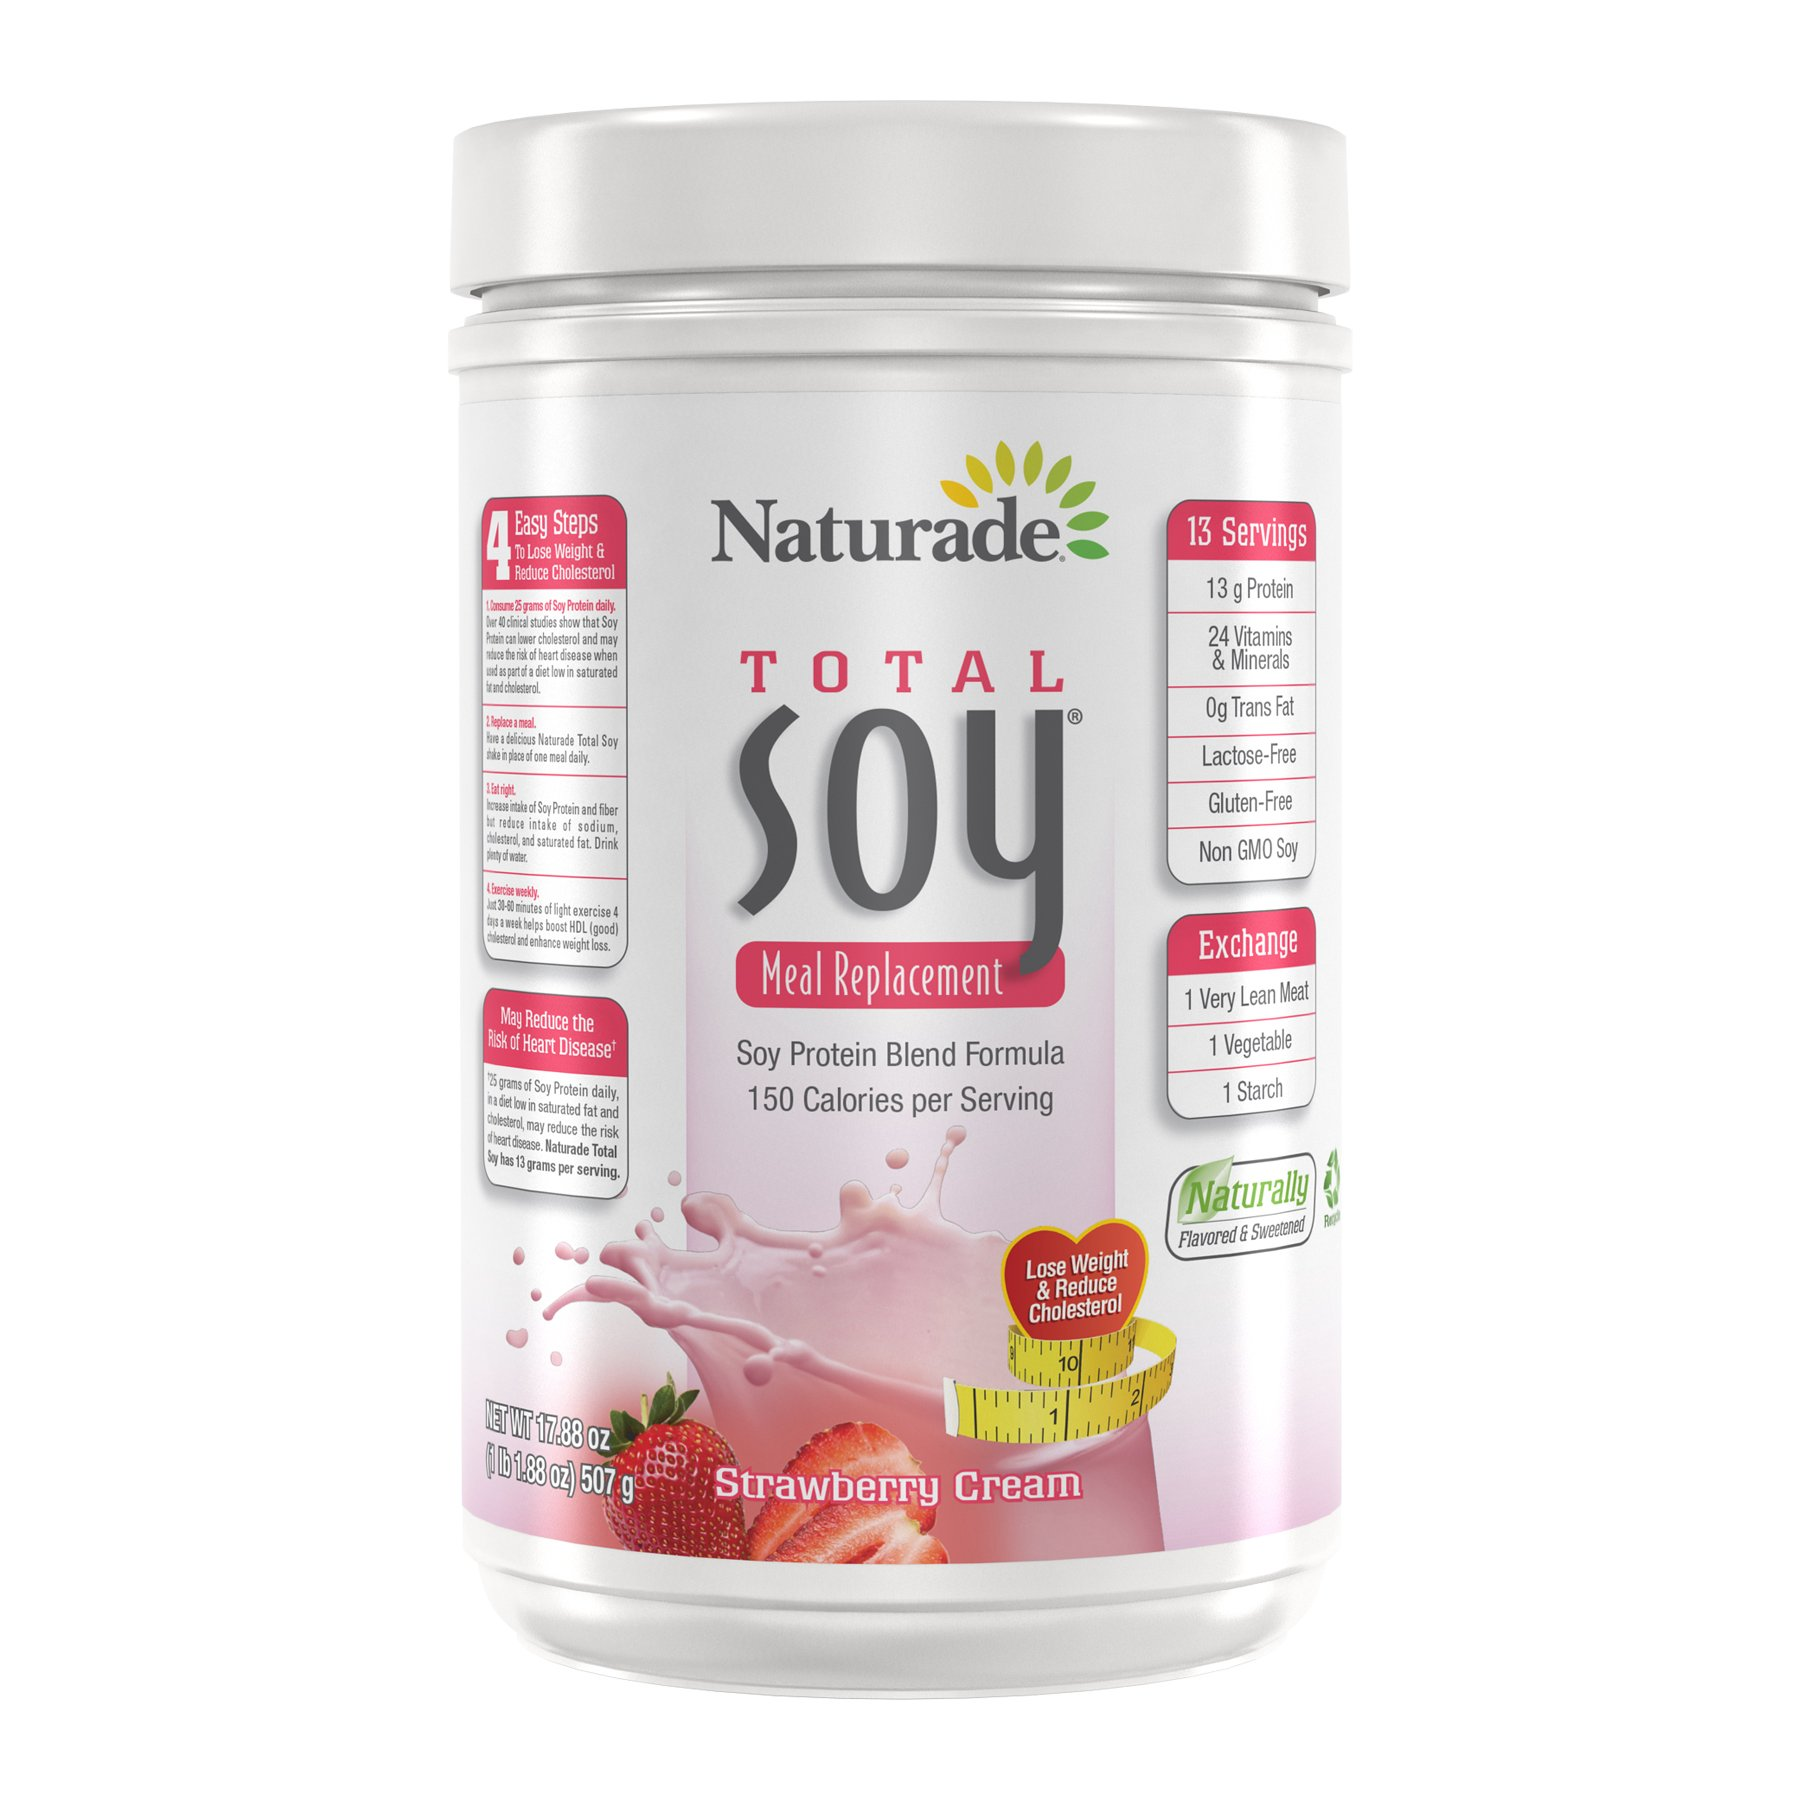 Naturade Total Soy All-Natural Powder – Strawberry Creme – 17.88 oz